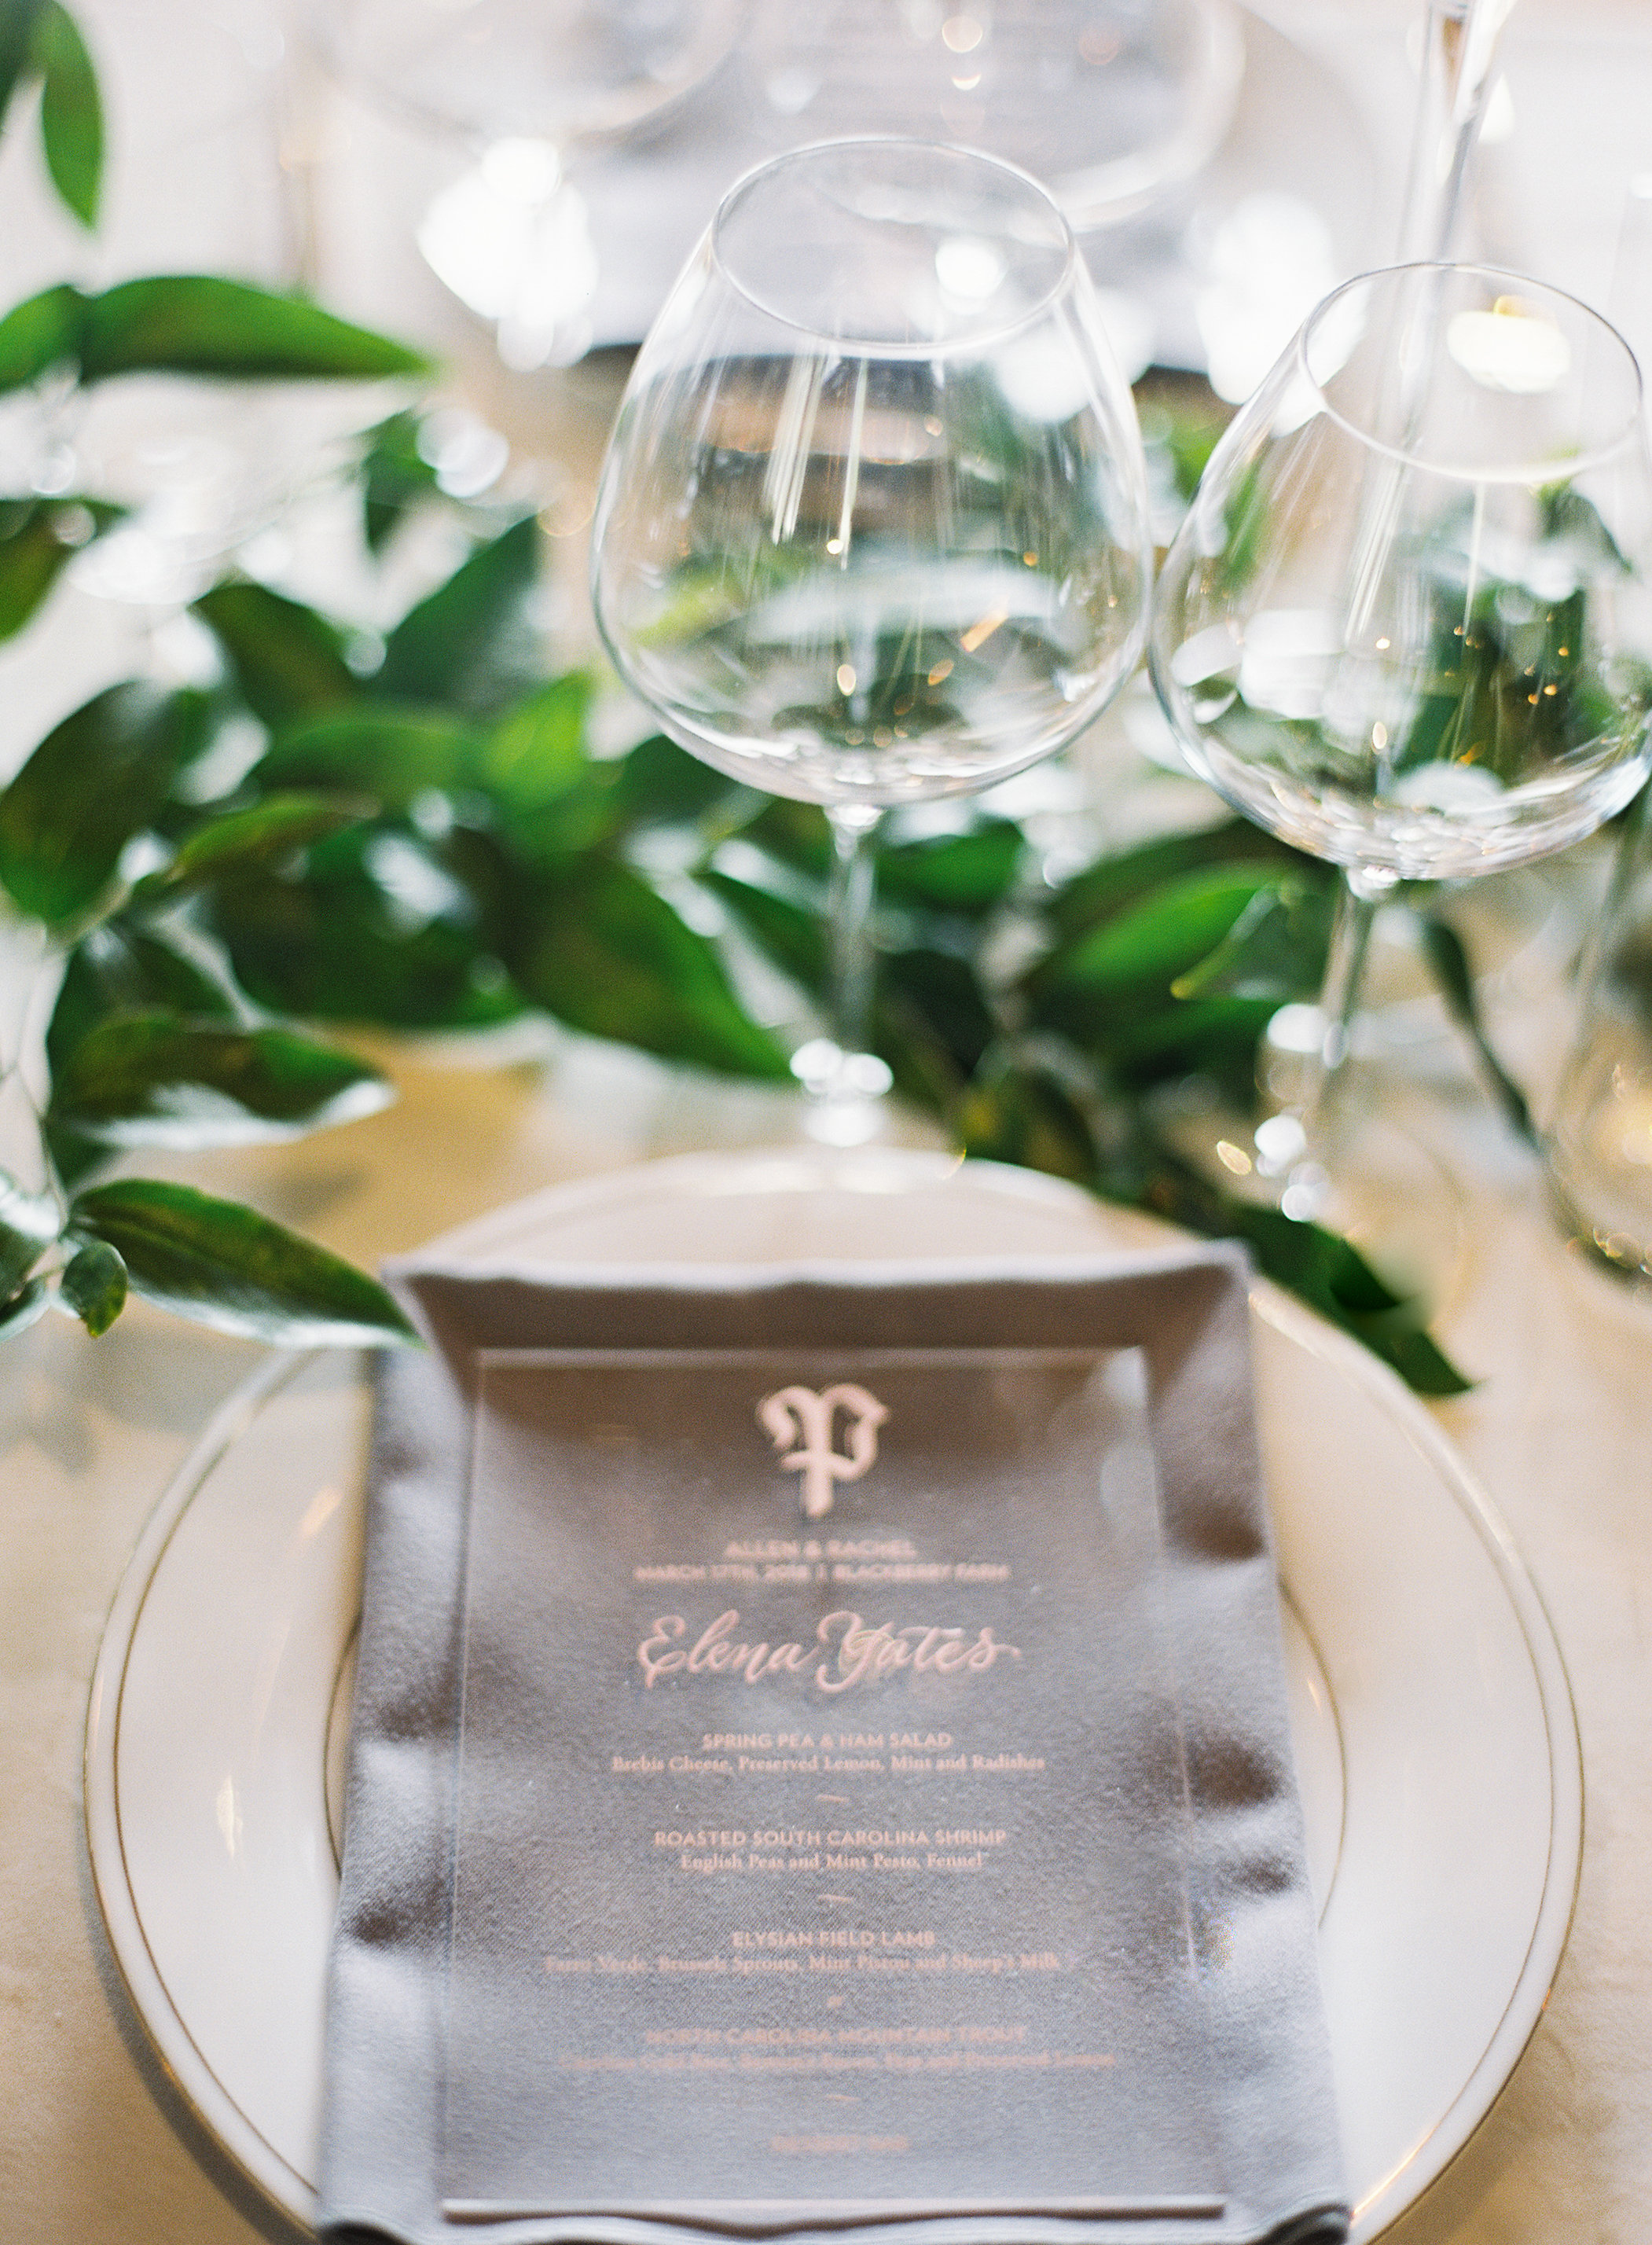 Rose gold printed acrylic wedding dinner menus, with rose gold calligraphy of each guest's name| by Chavelli www.chavelli.com